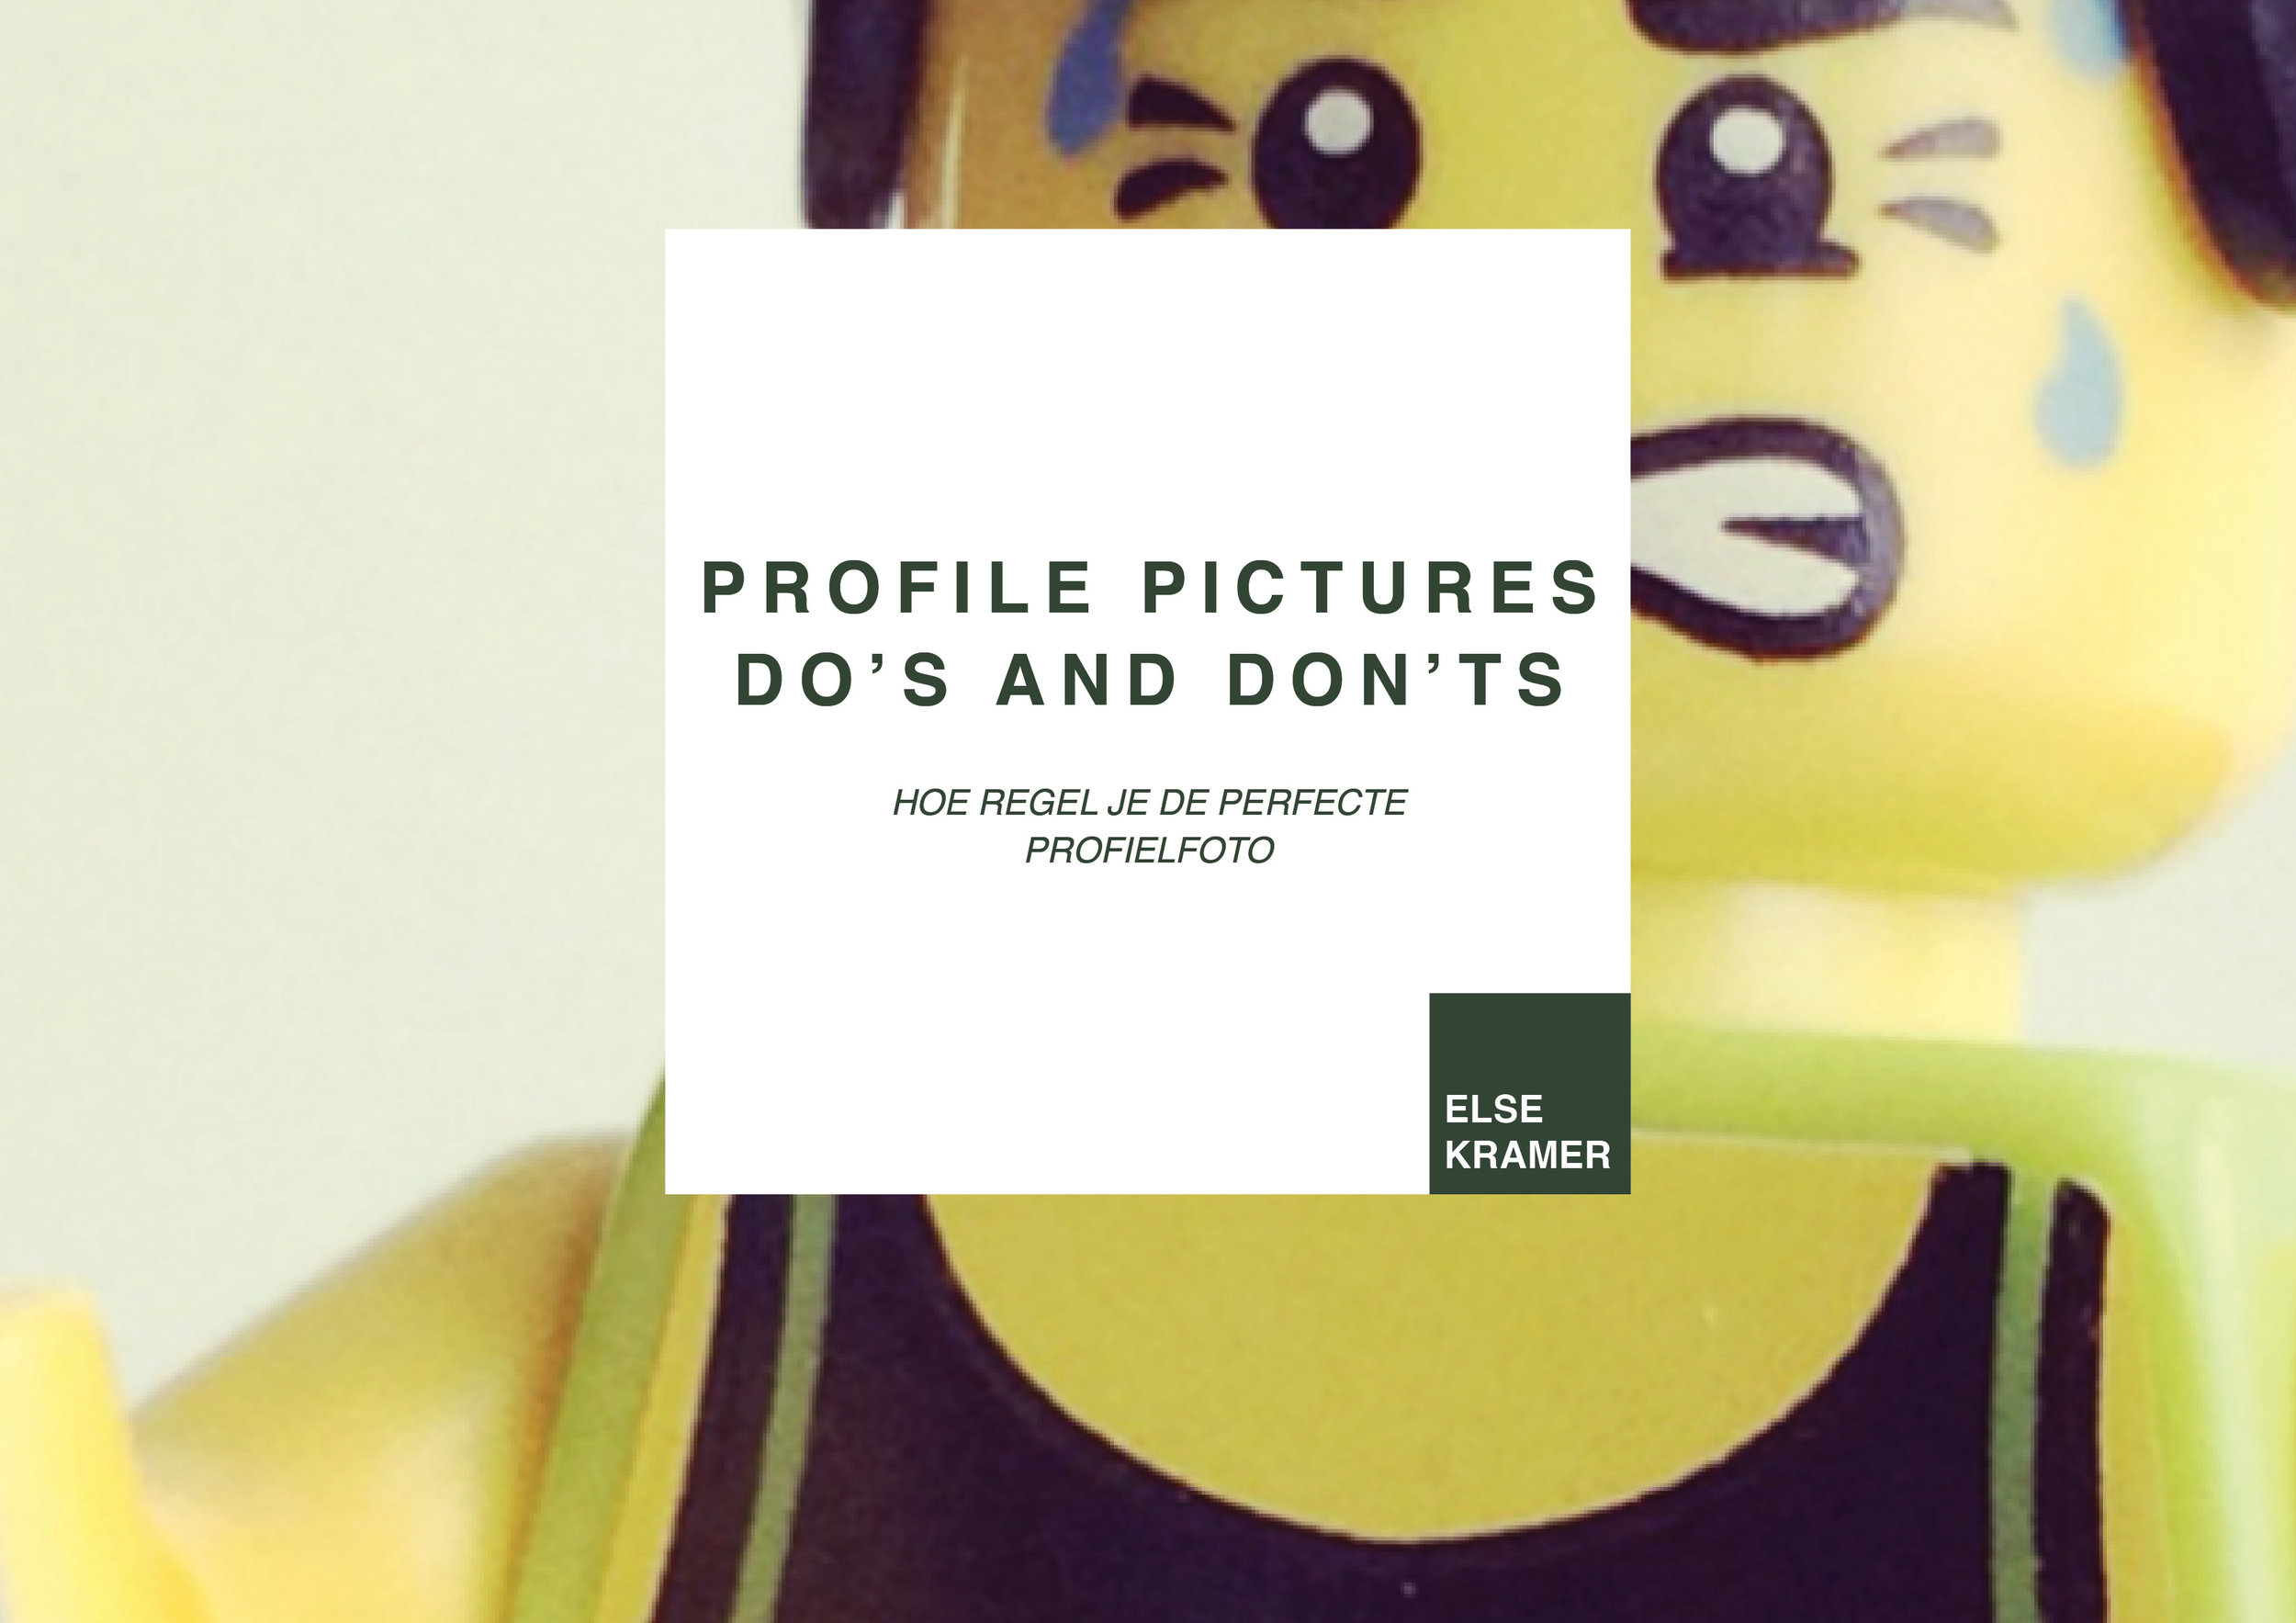 give away profile pictures do's and don'ts  NL front page.jpg